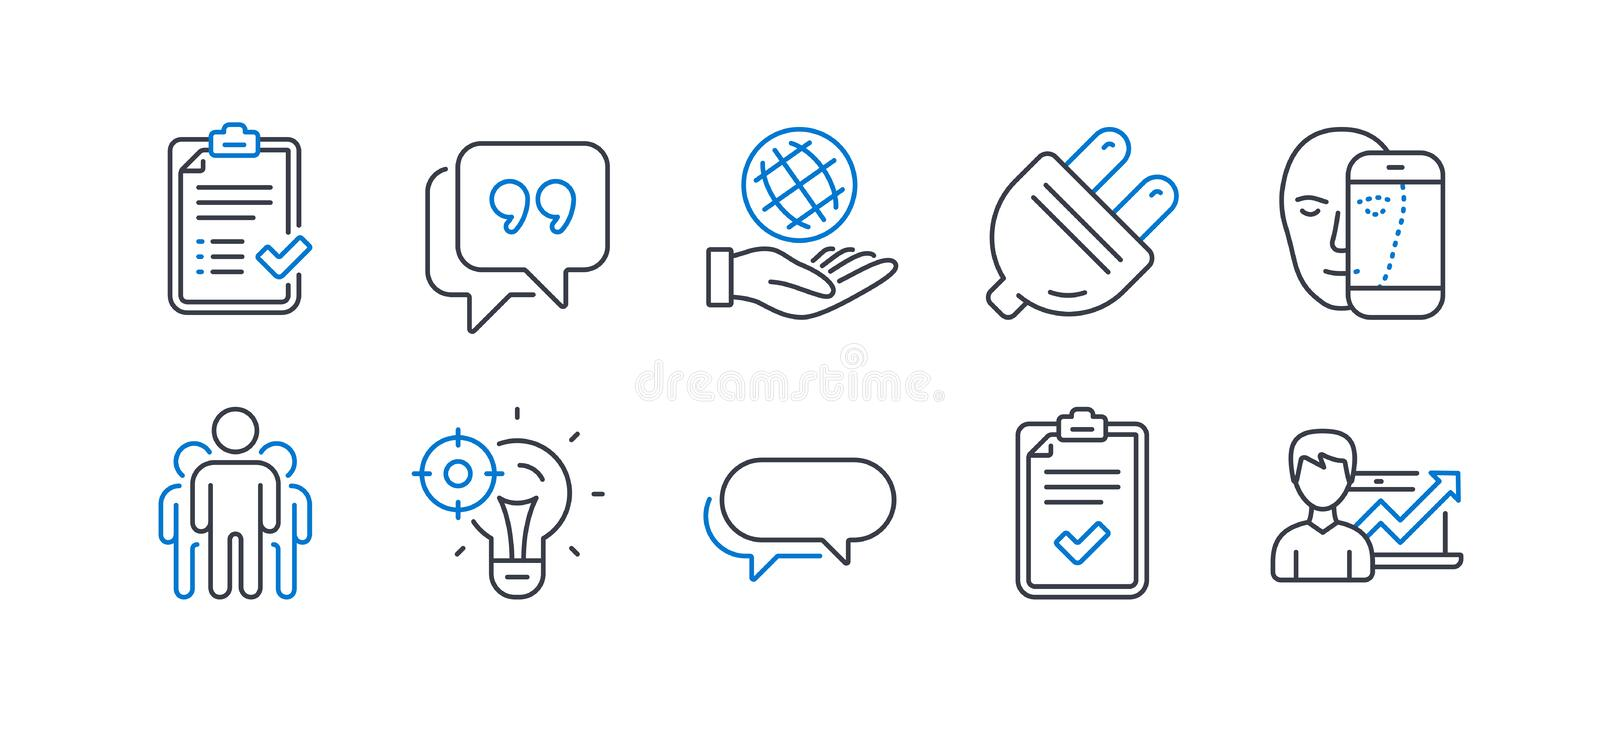 Set of Technology icons, such as Face biometrics, Quote bubble, Checklist. Vector vector illustration